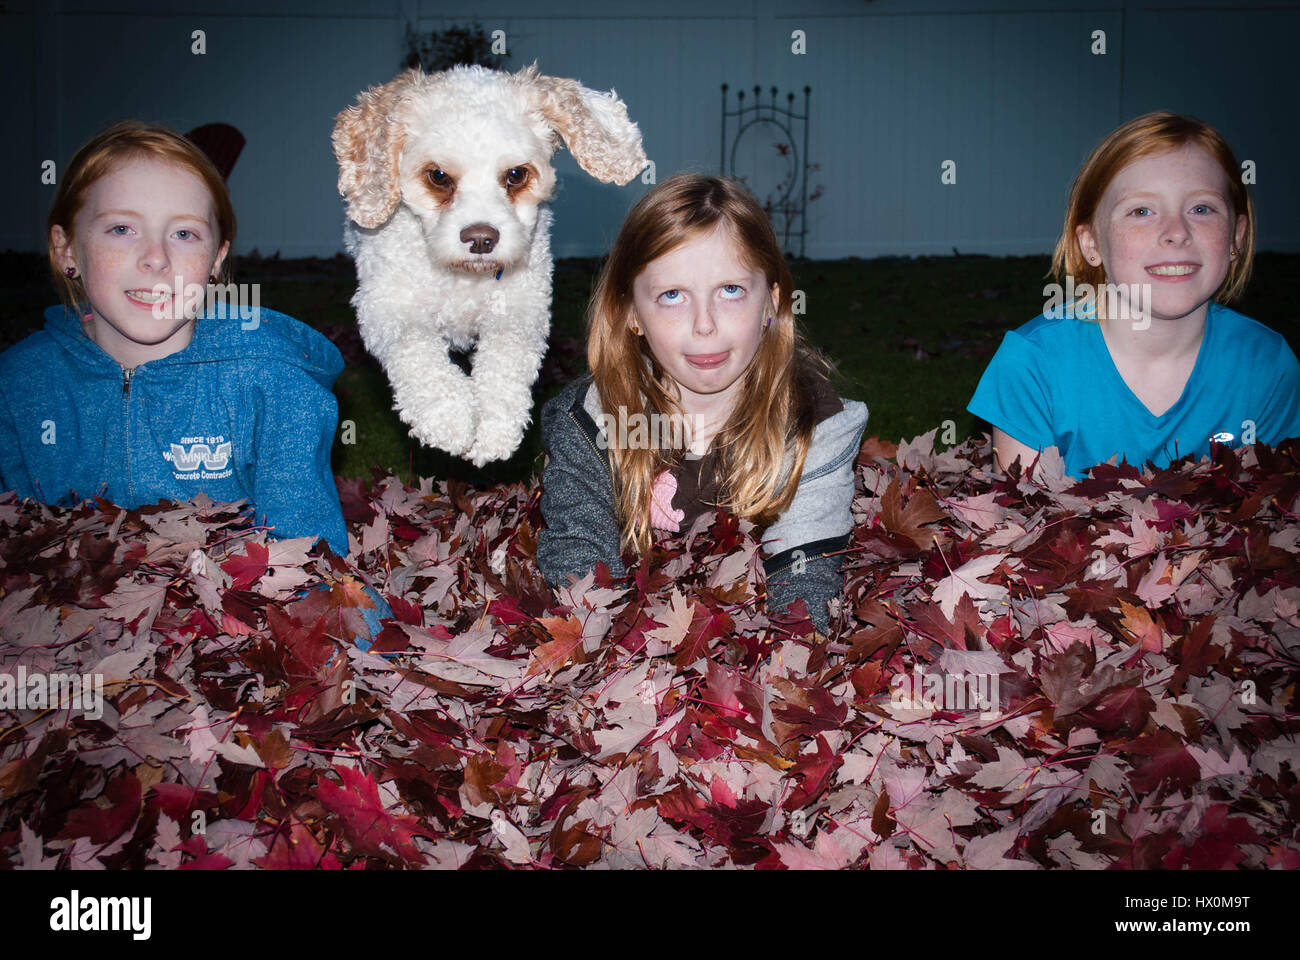 White dog jumping over pile of Autumn leaves between three silly girls. - Stock Image